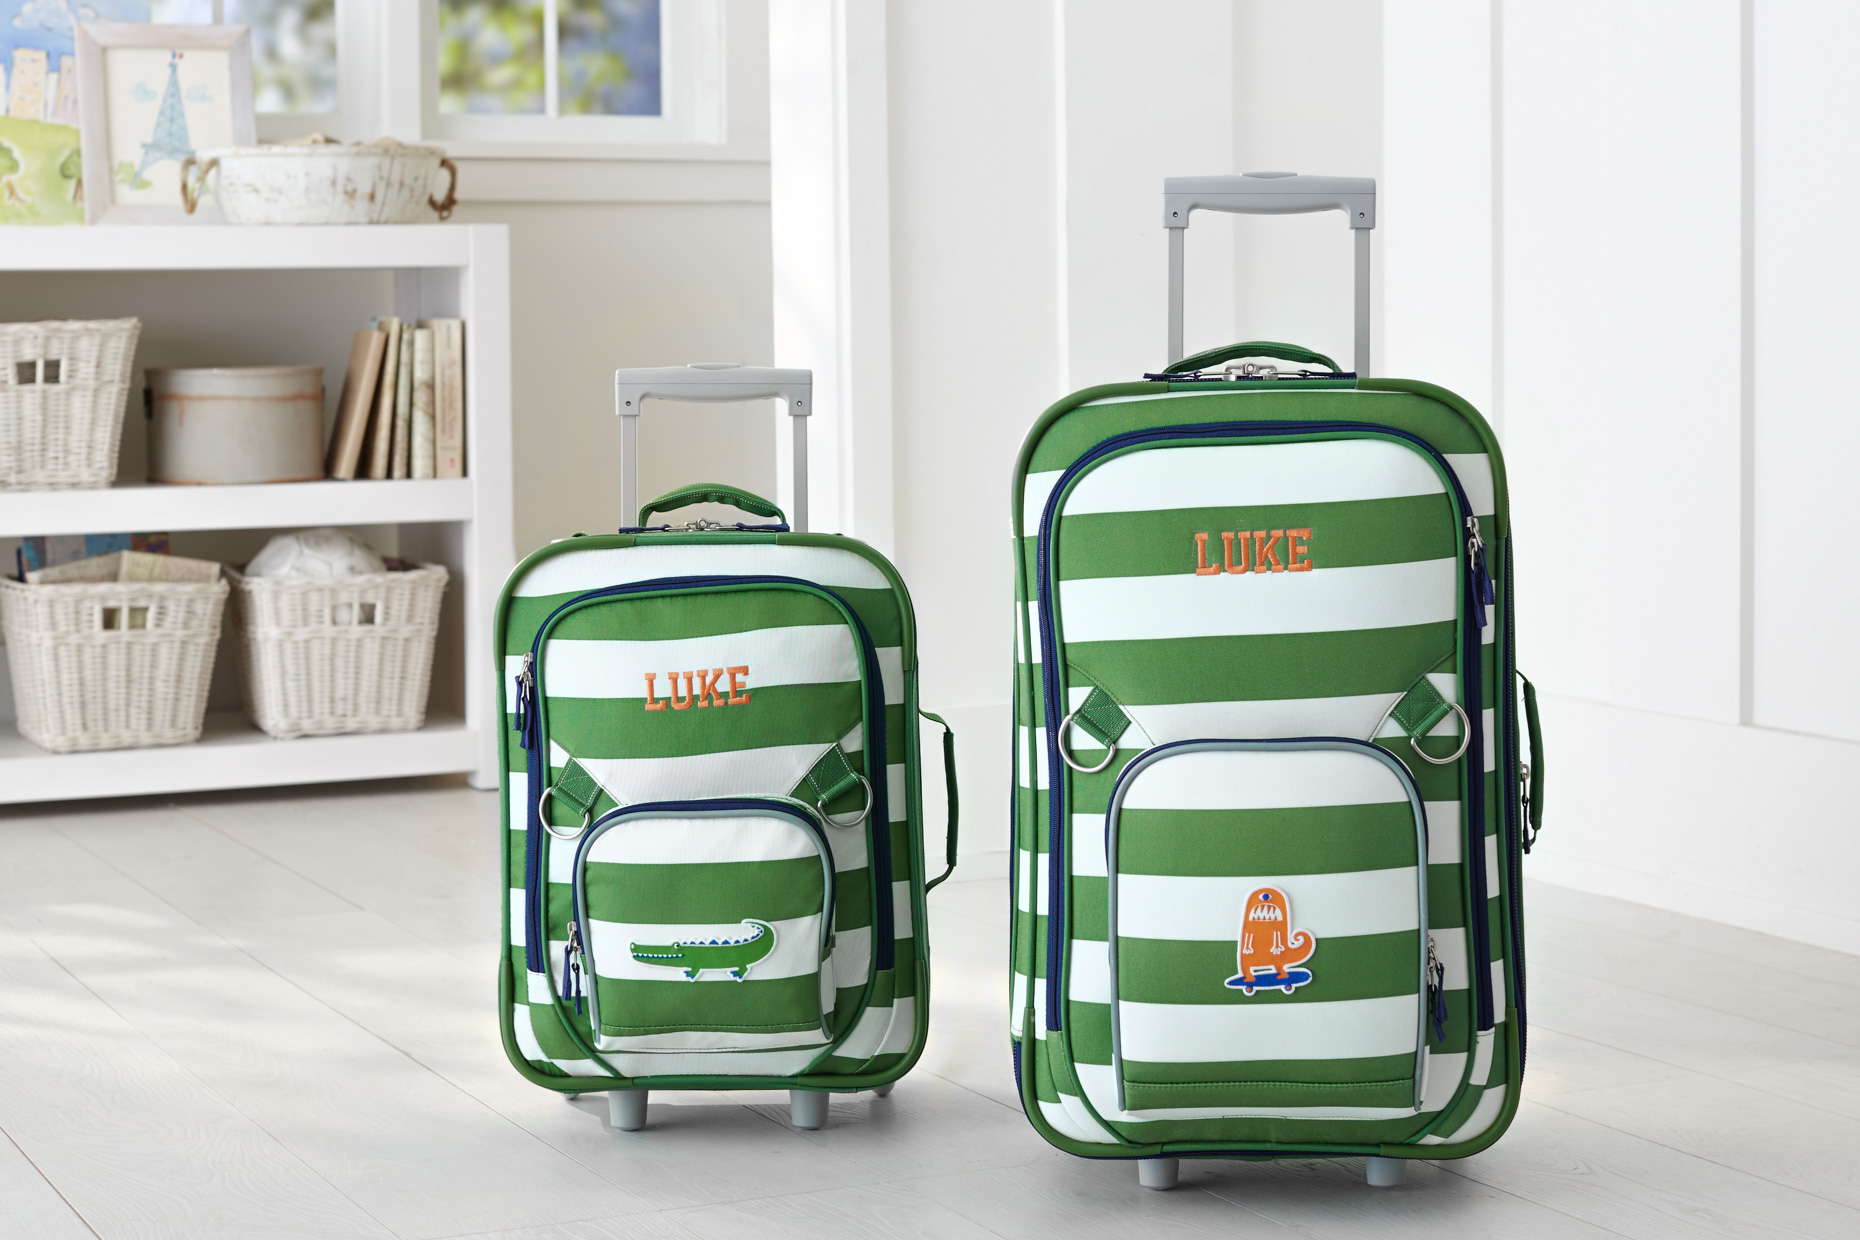 Fairfax Green and White Luggage